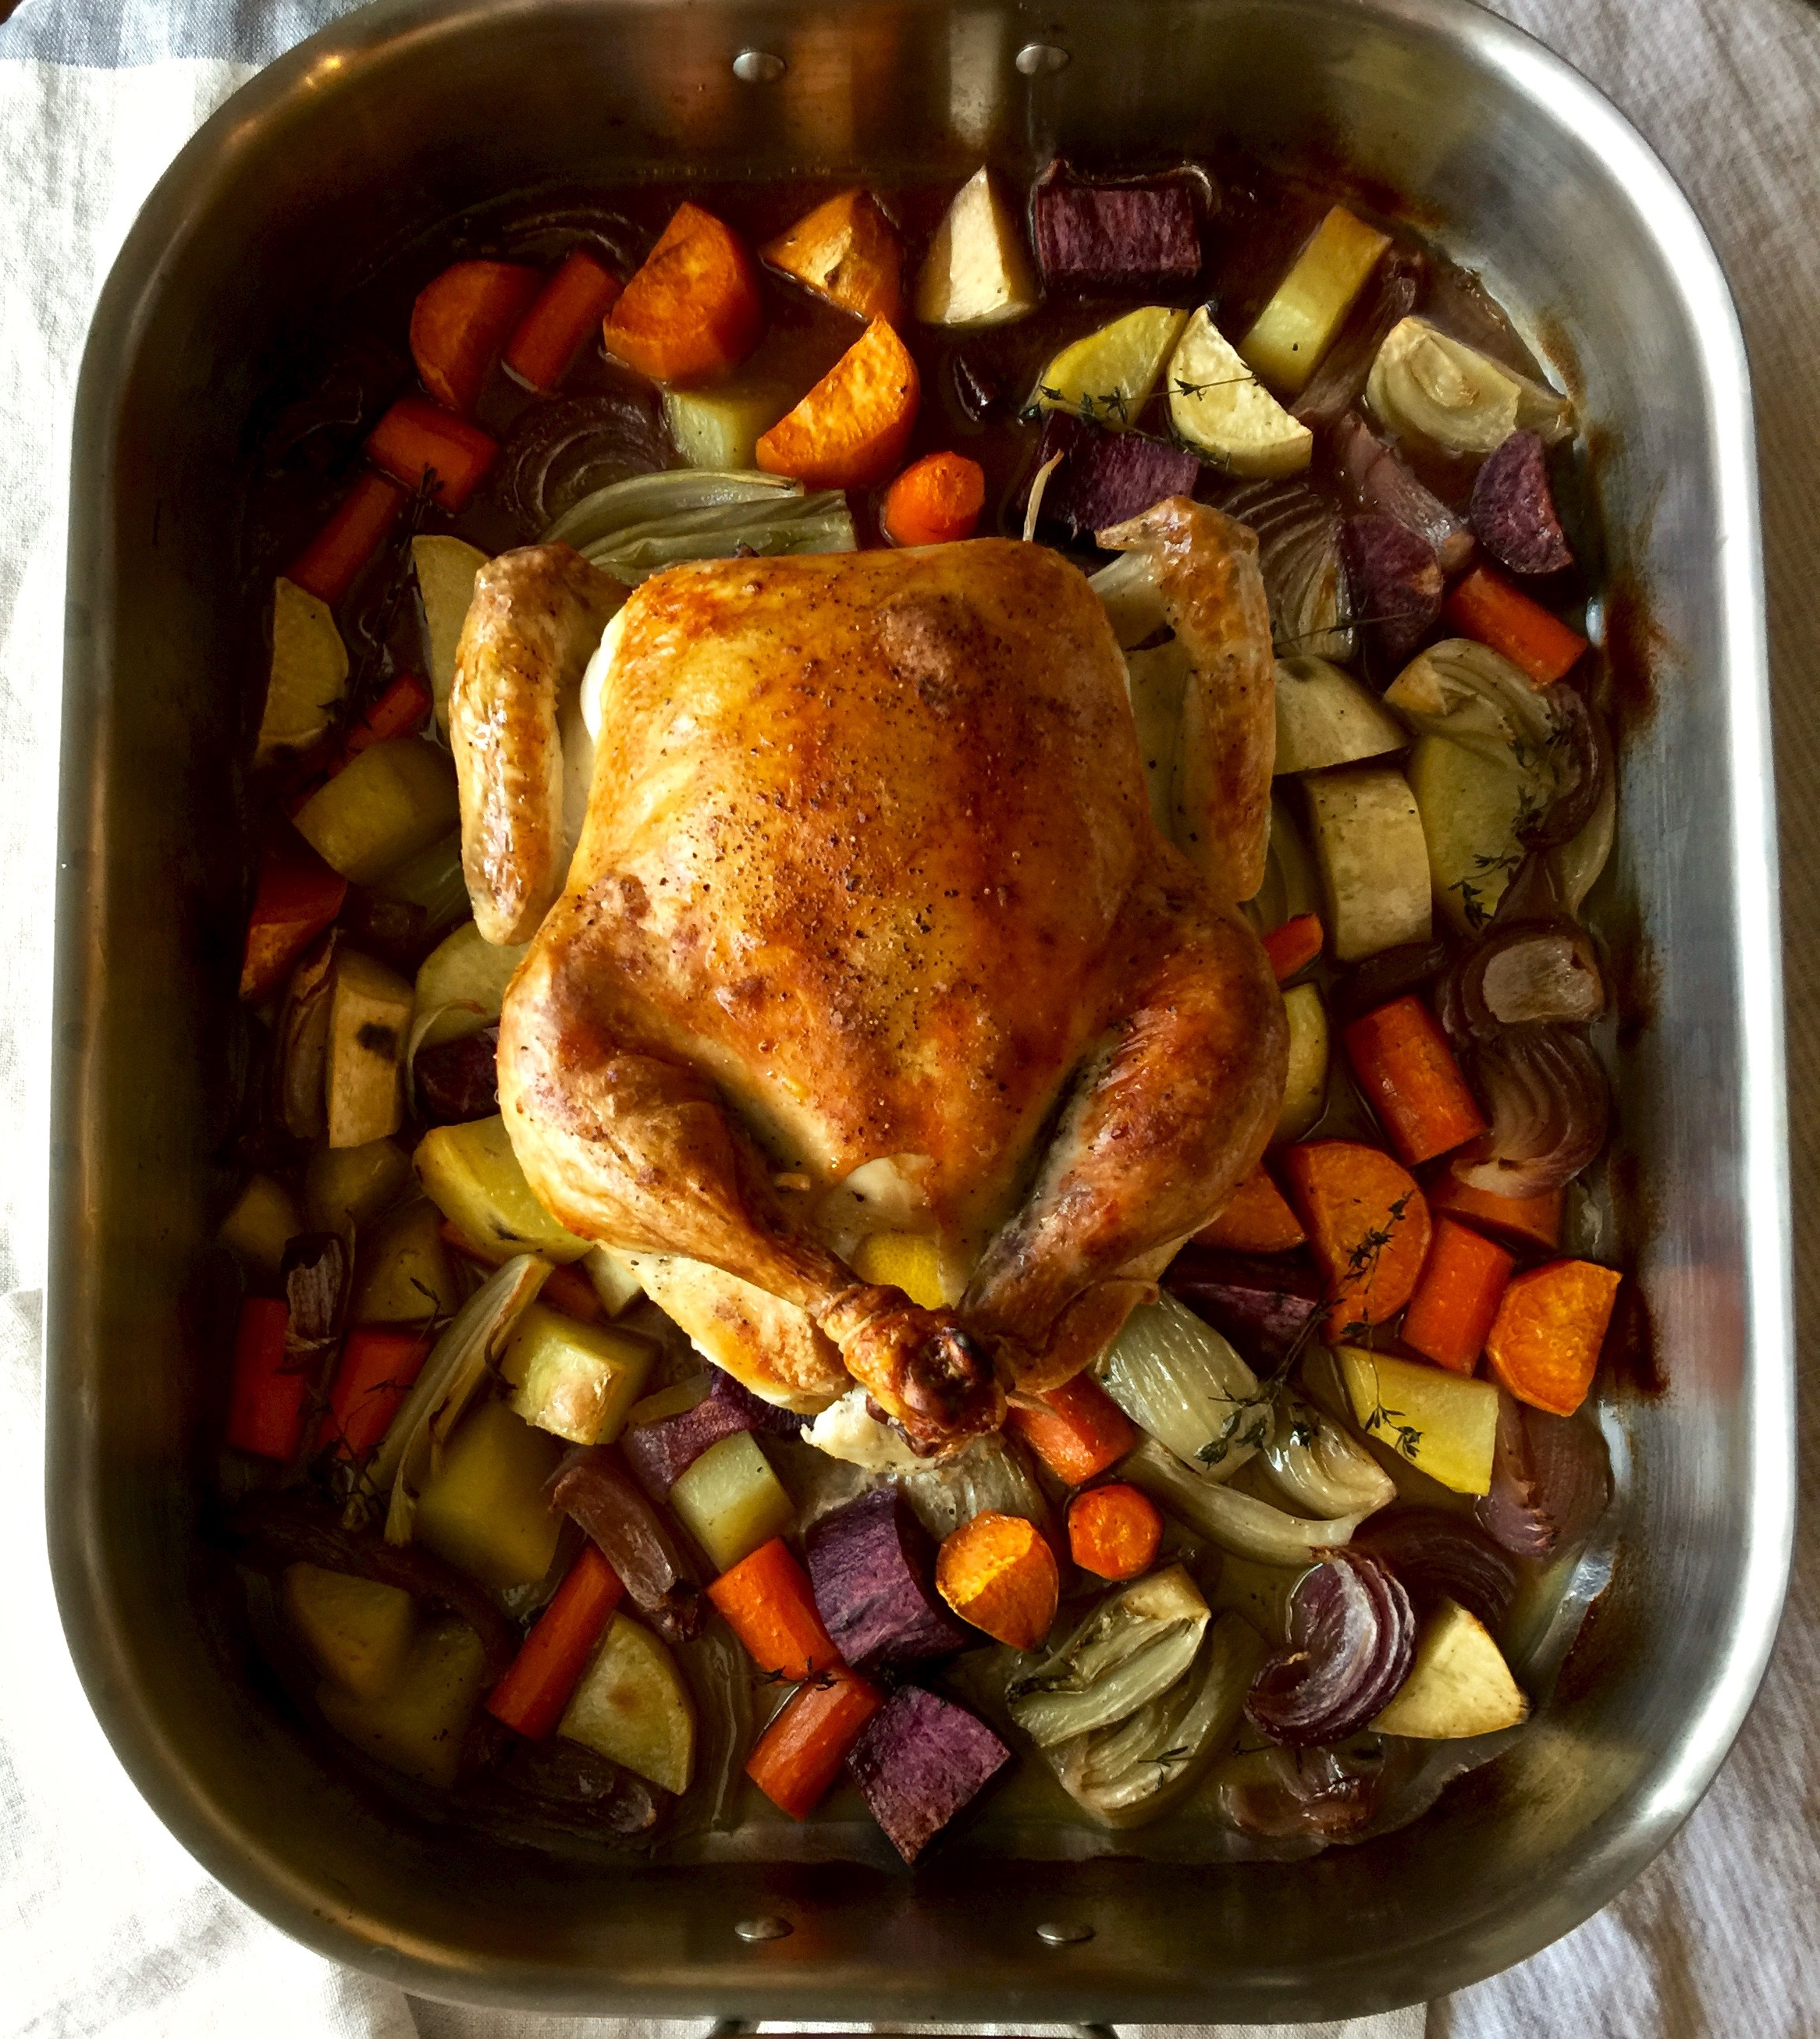 January 19 - Chicken and roasted vegetables